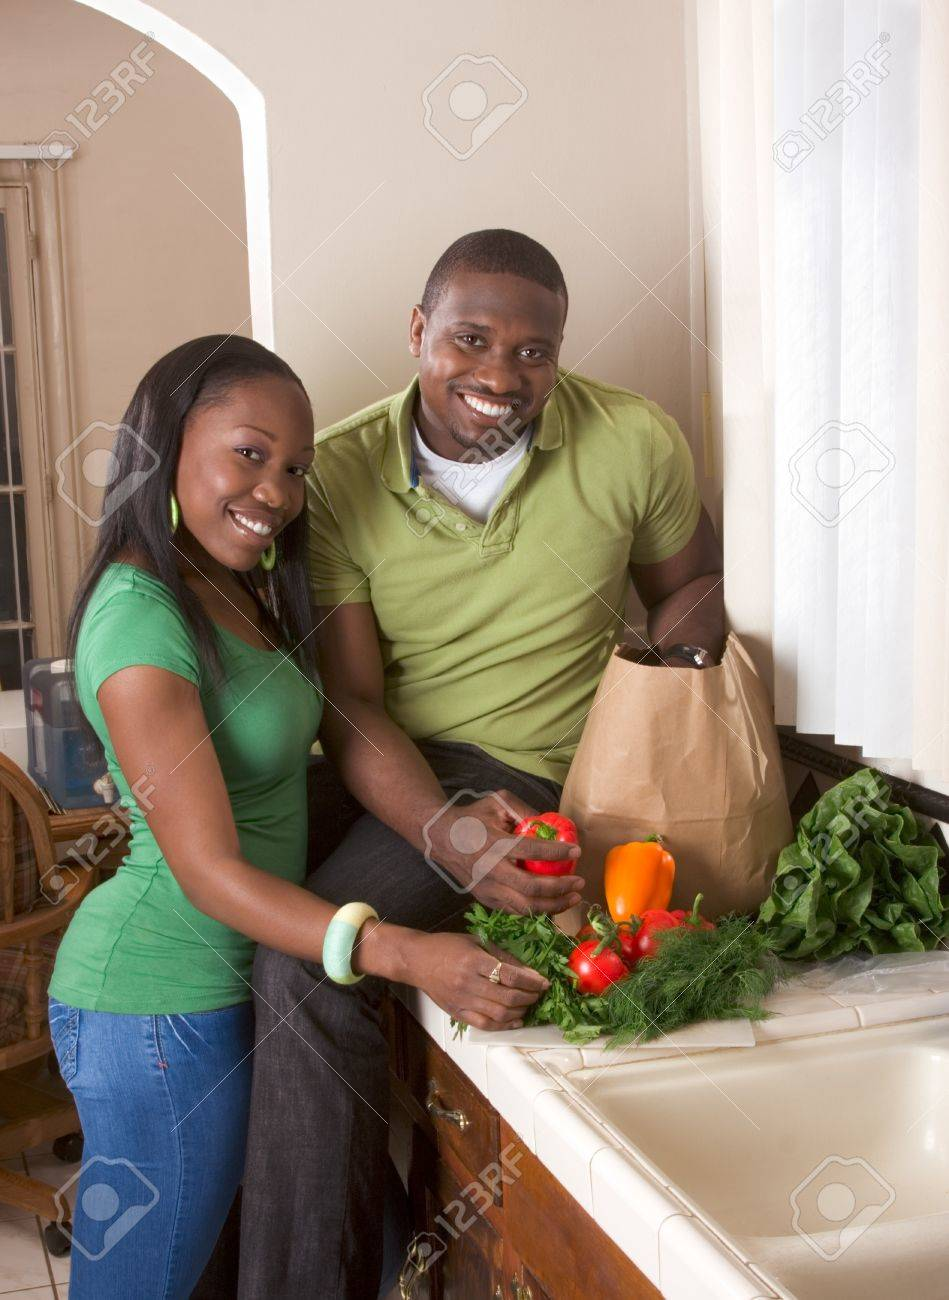 Young black African American couple sorting vegetable on kitchen countertop Stock Photo - 8145169